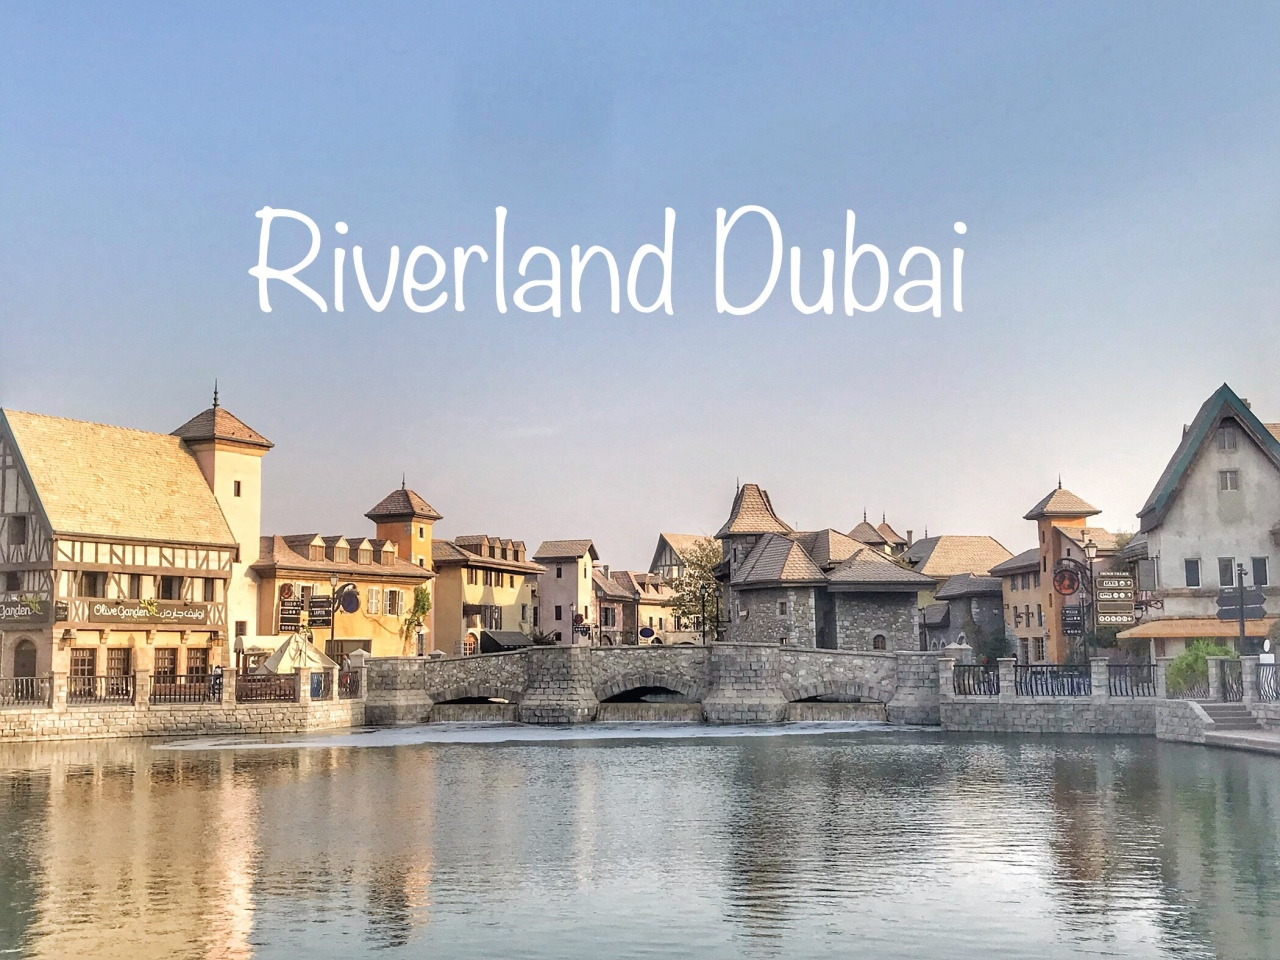 Legoland and Riverland Dubai, a new fascinating attraction in Dubai